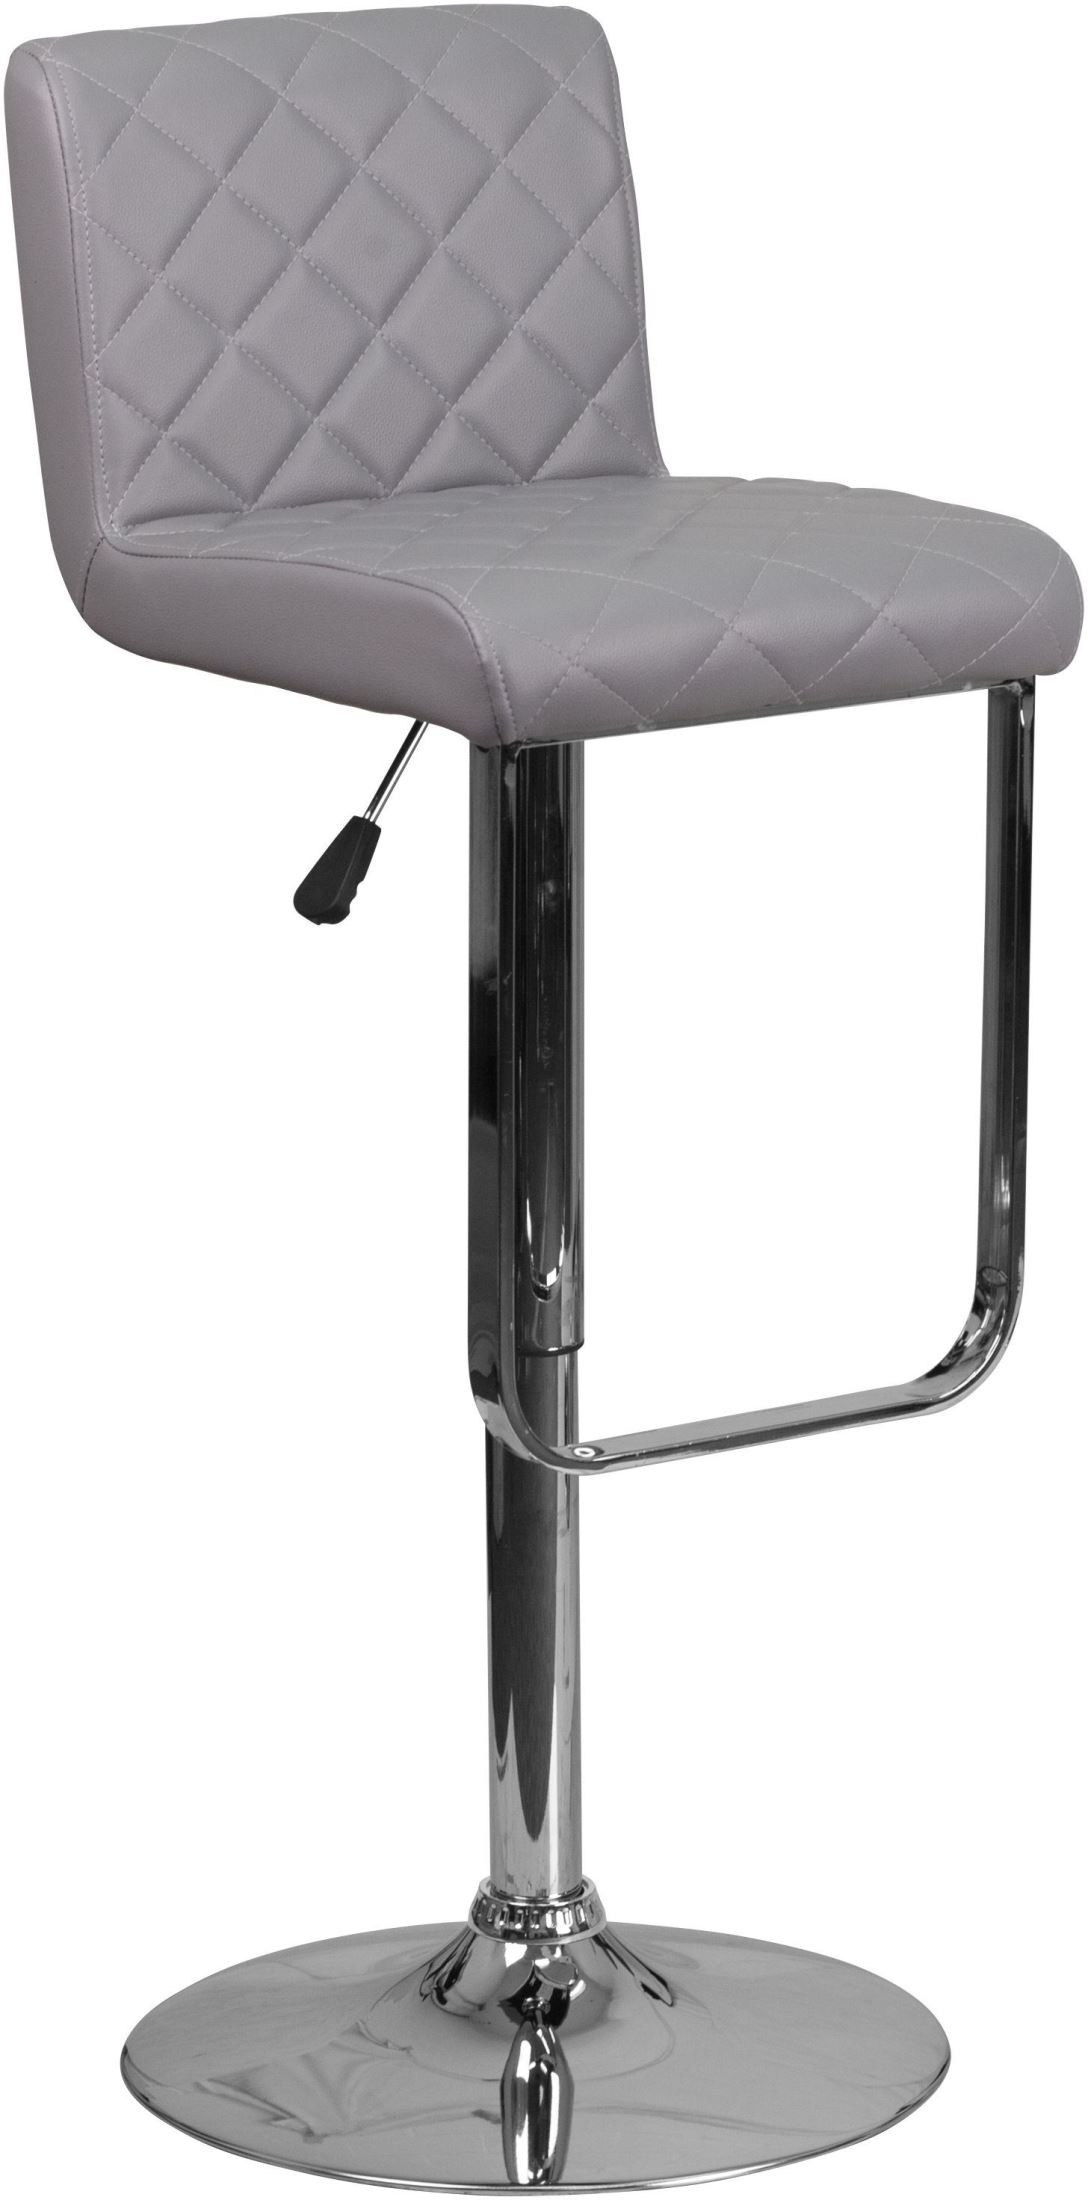 Mid Back Gray Vinyl Upholstery Adjustable Height Bar Stool  : ds 8101 gy gg from colemanfurniture.com size 1088 x 2200 jpeg 173kB